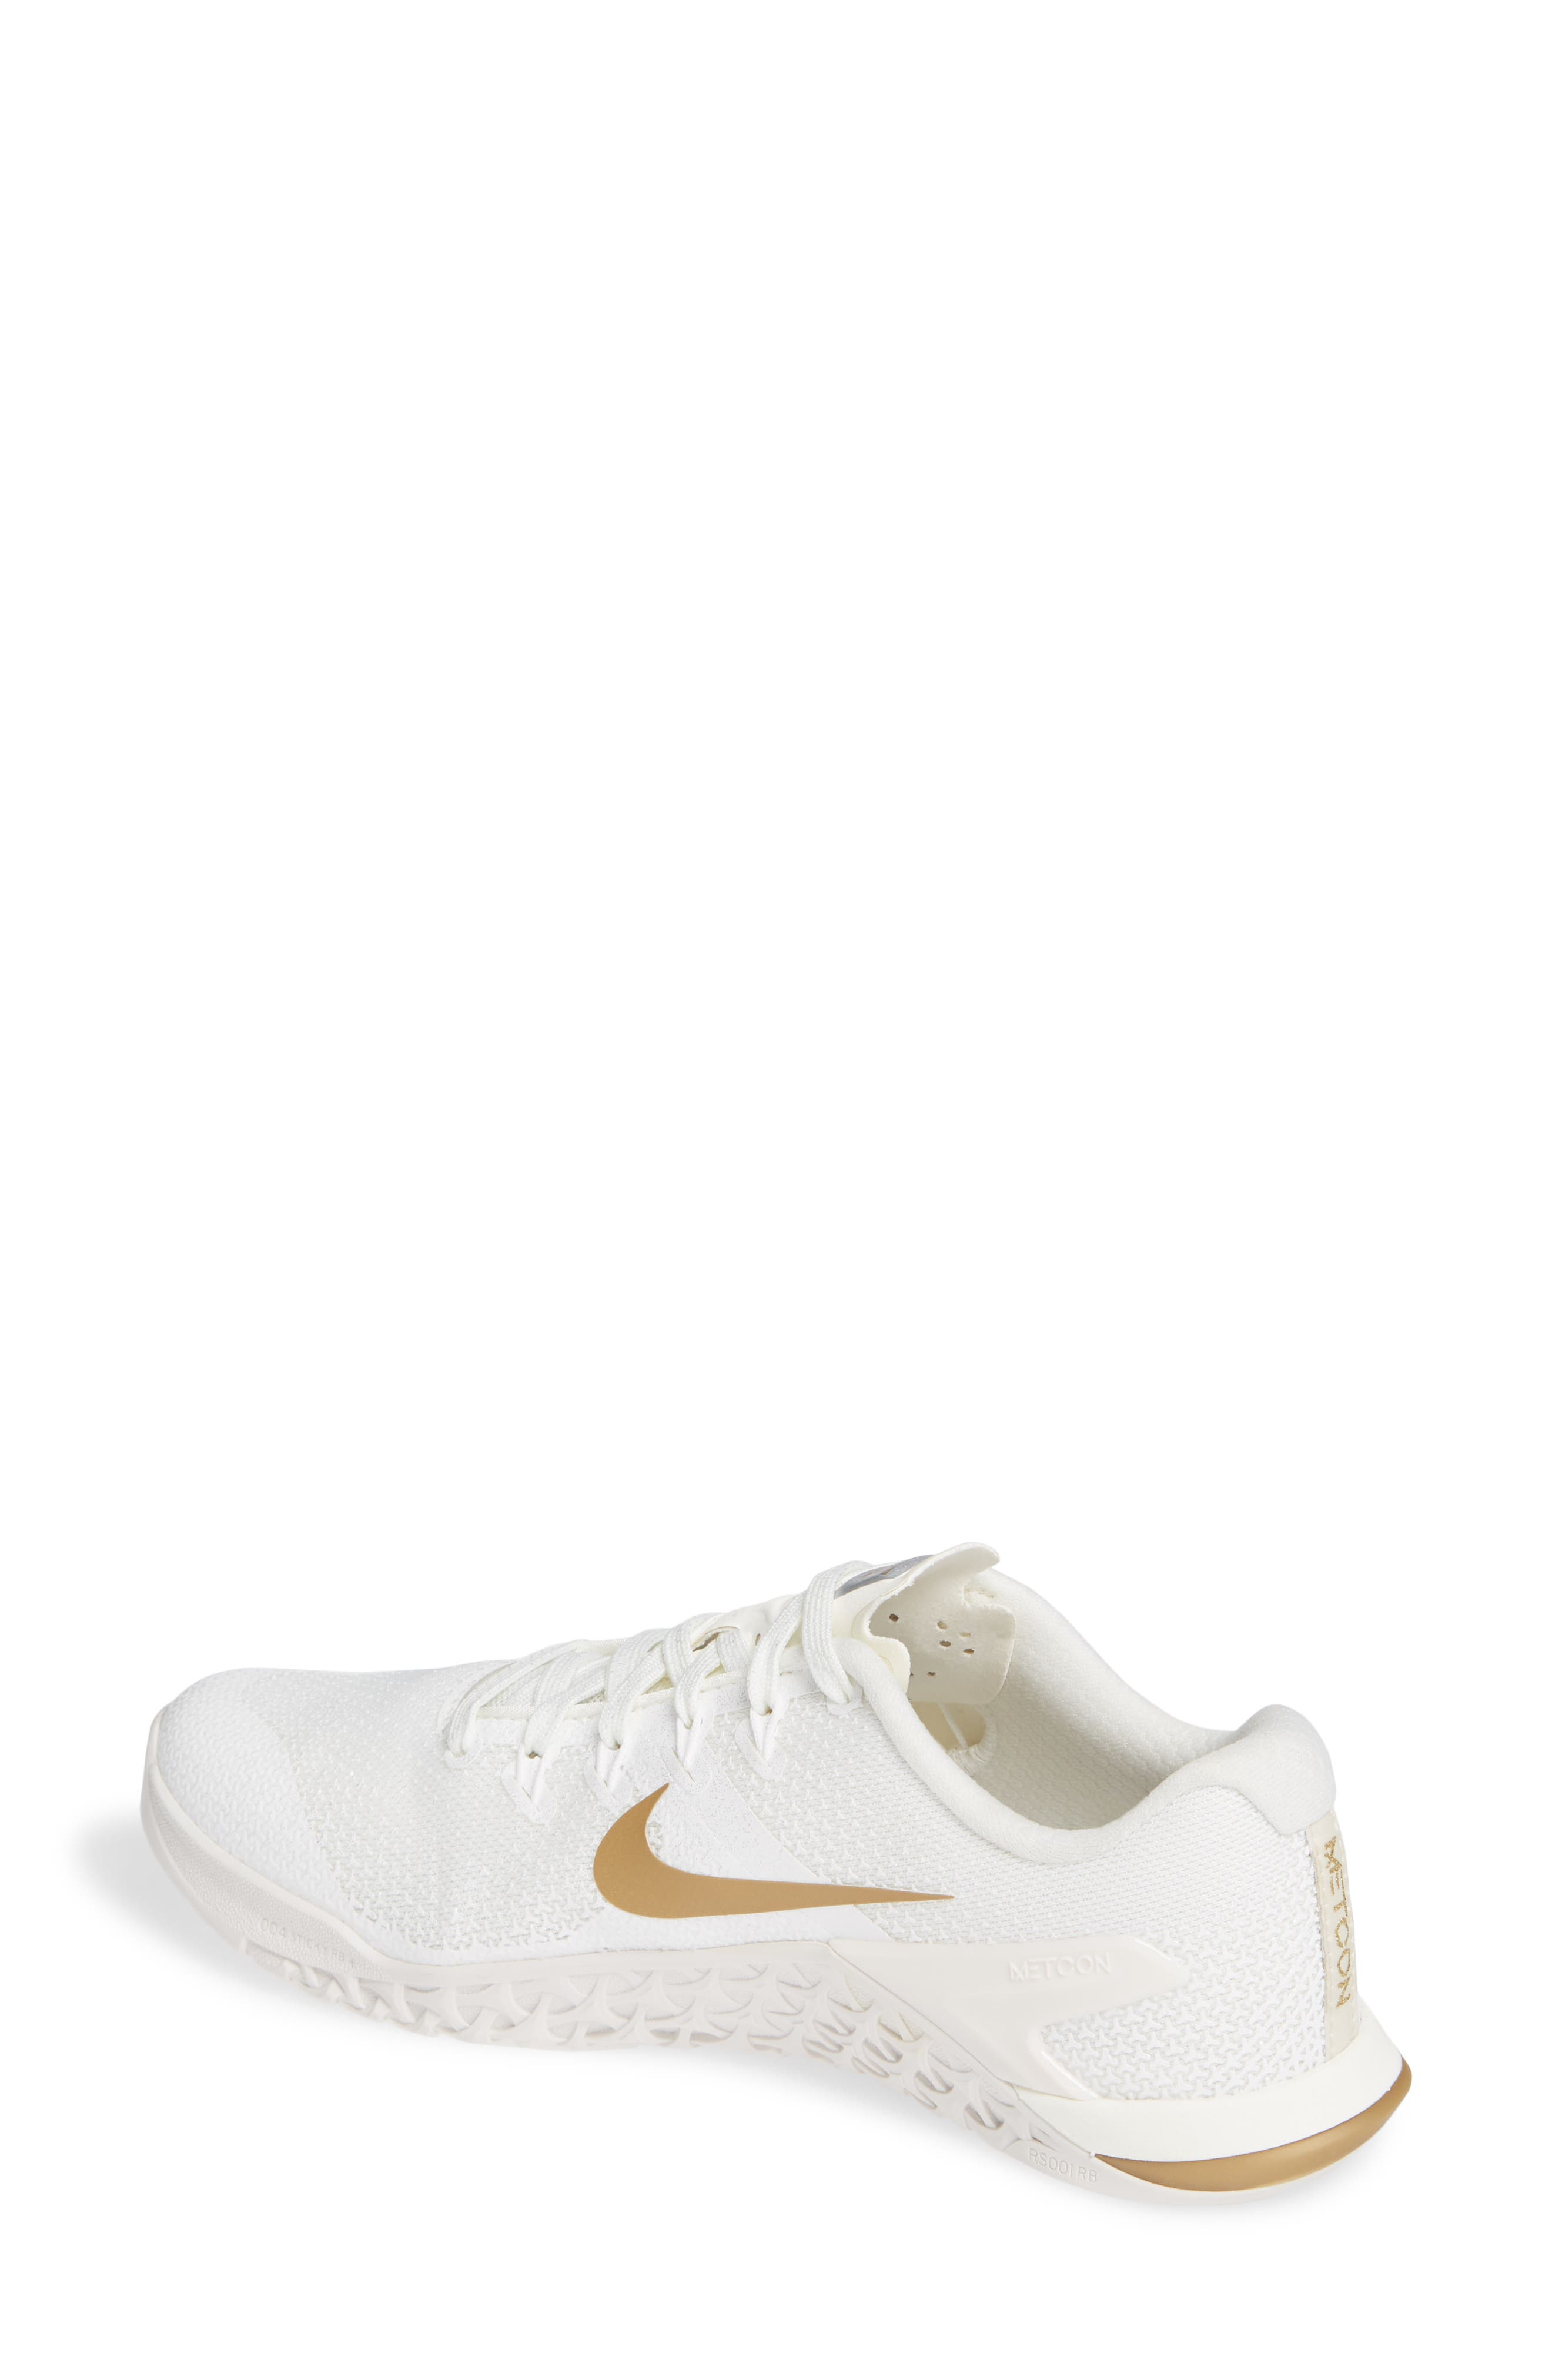 Metcon 4 Training Shoe,                             Alternate thumbnail 2, color,                             CHAMPAGNE